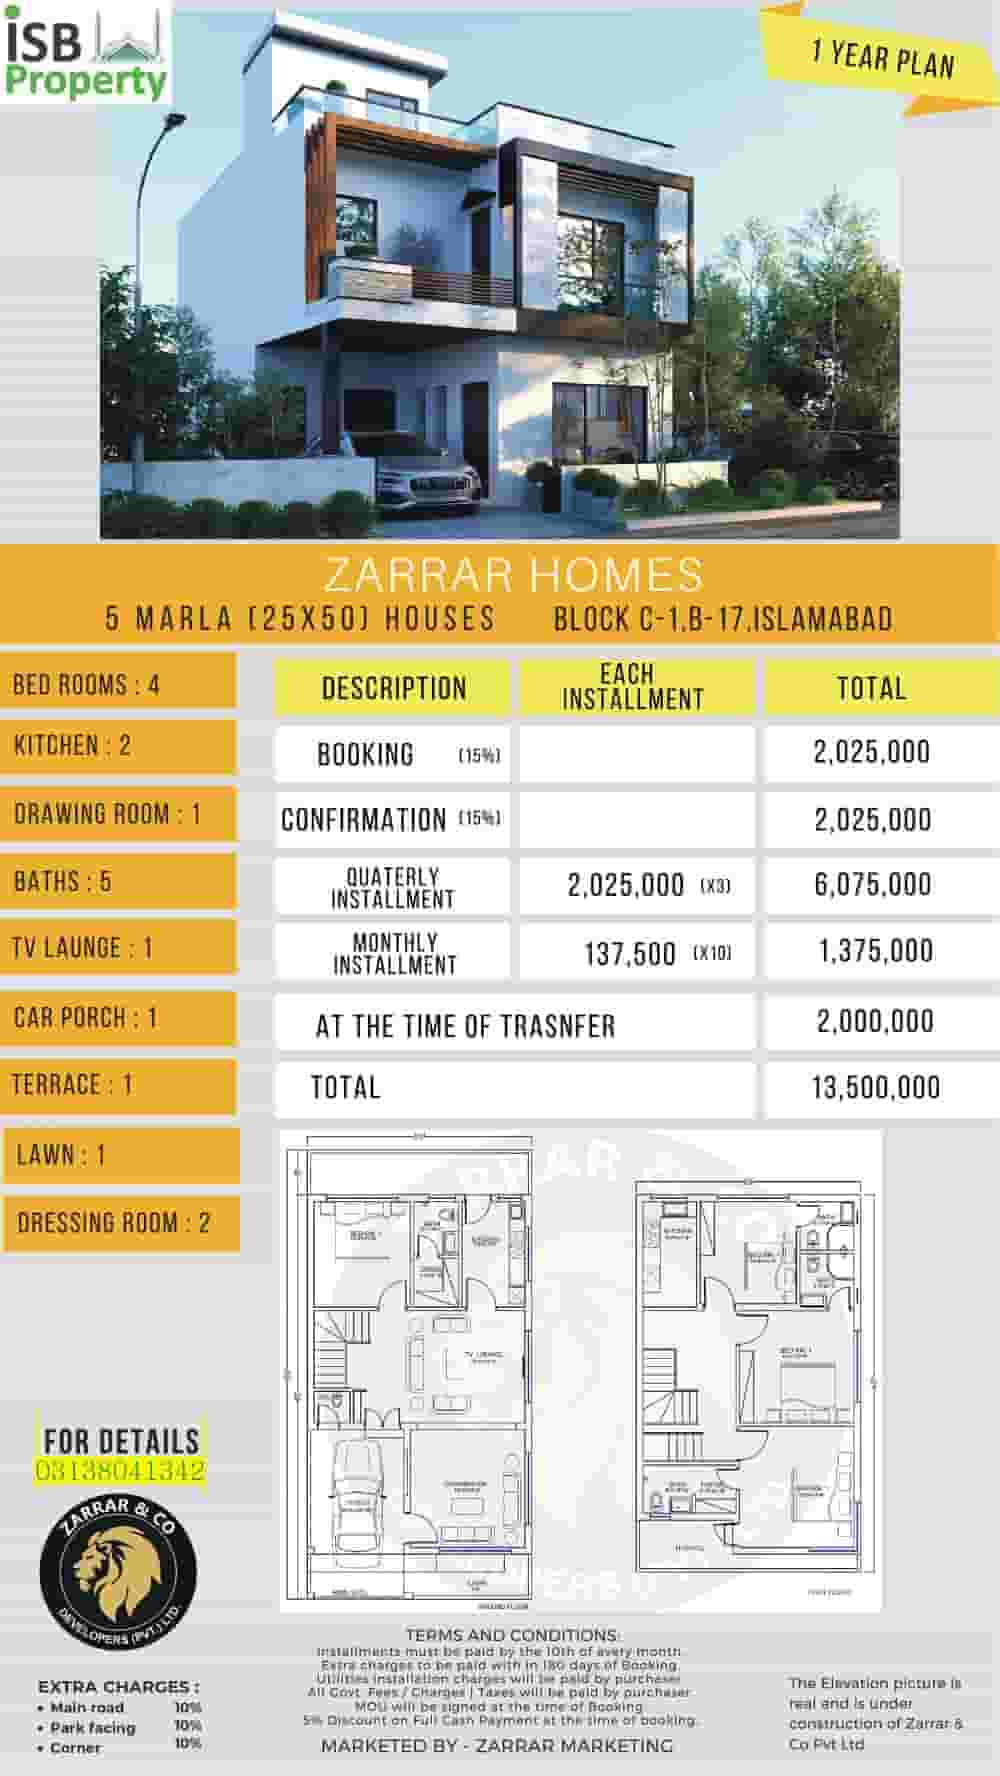 Zarar Homes 5 Marla 1 Year Plan 1